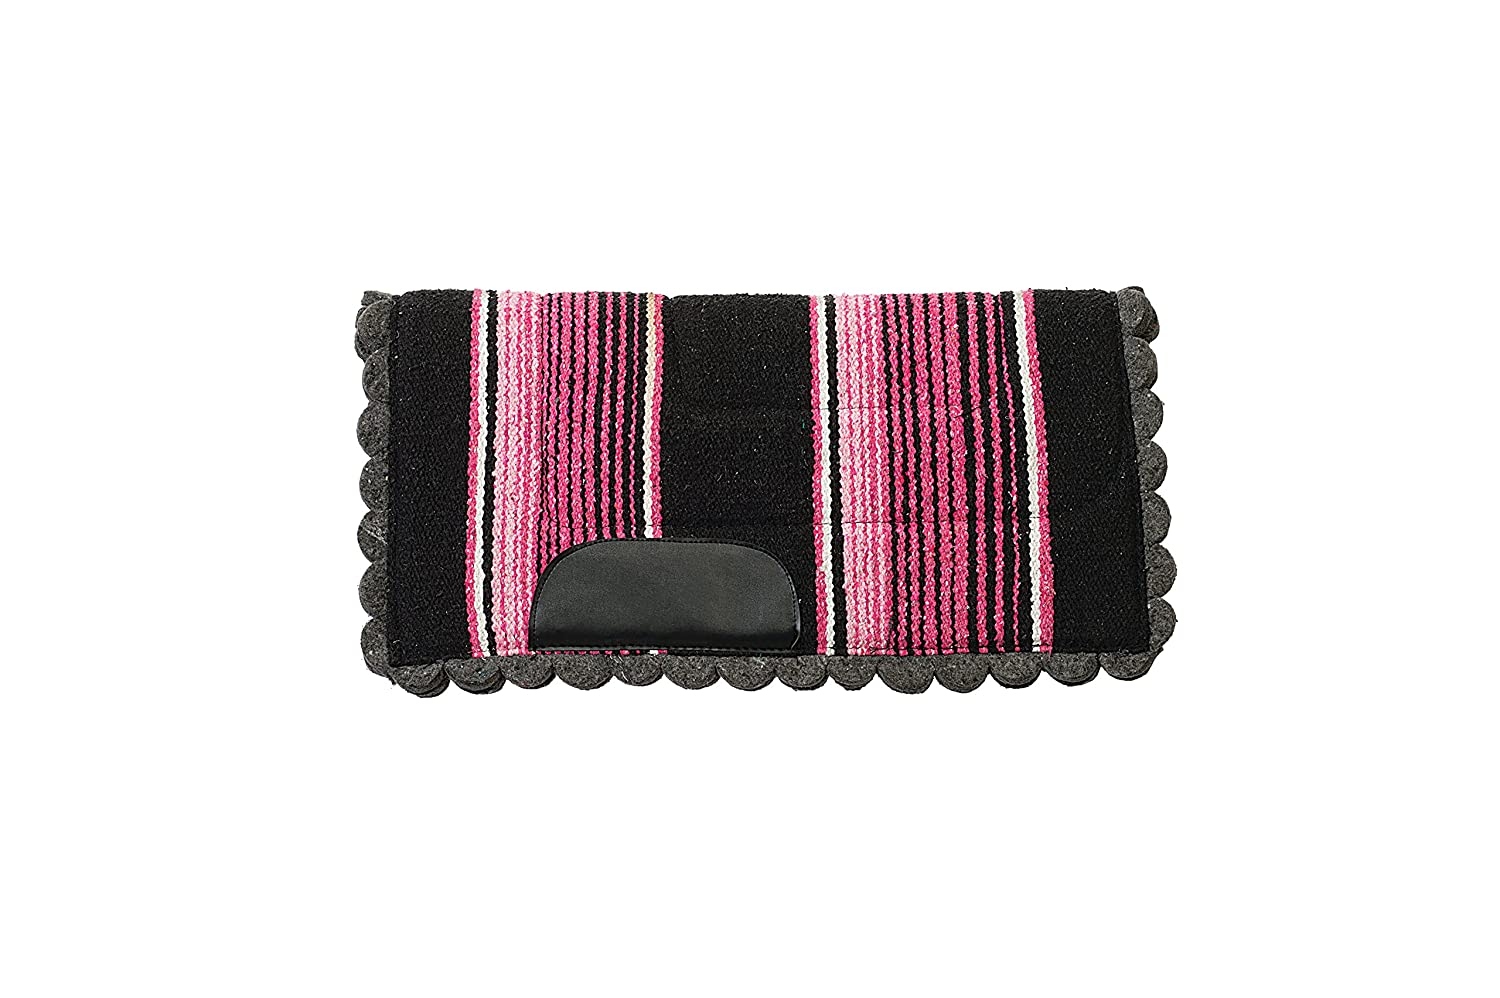 Pink Weaver Leather Weaver Leather Pony Felt Lined Navajo Saddle Pad, bluee 35-9806-BL-P